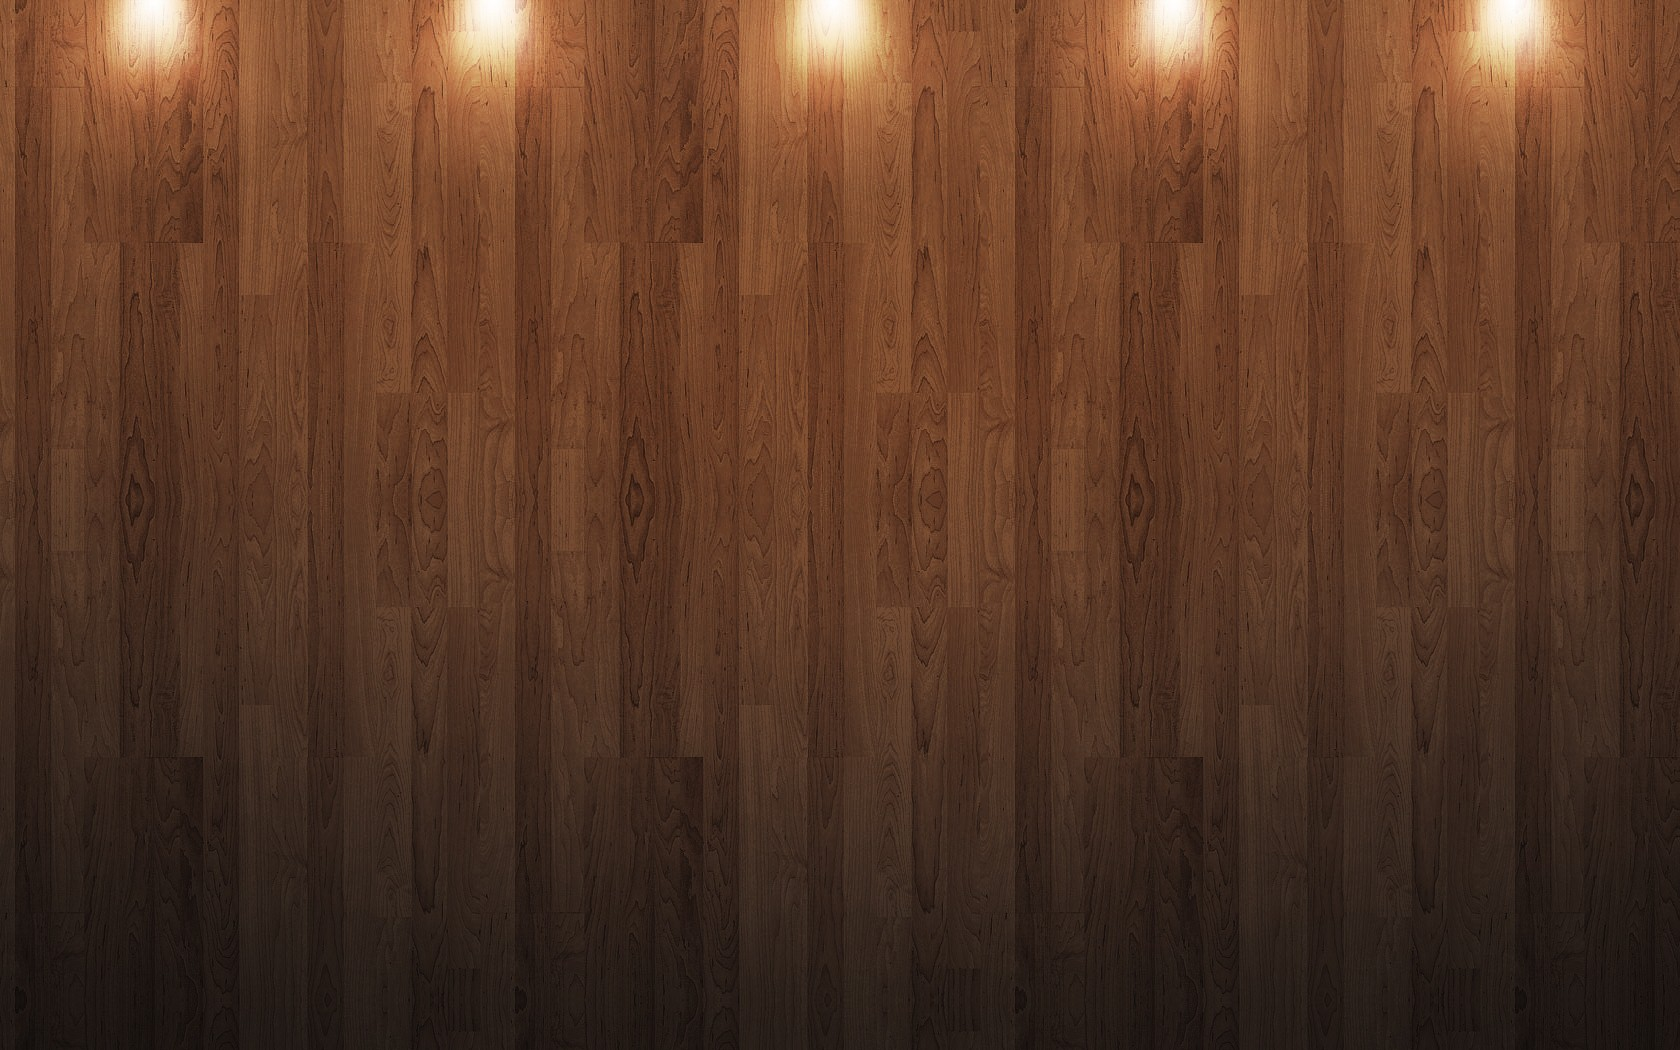 bamboo spotlights wood wall 8110 1680x1050